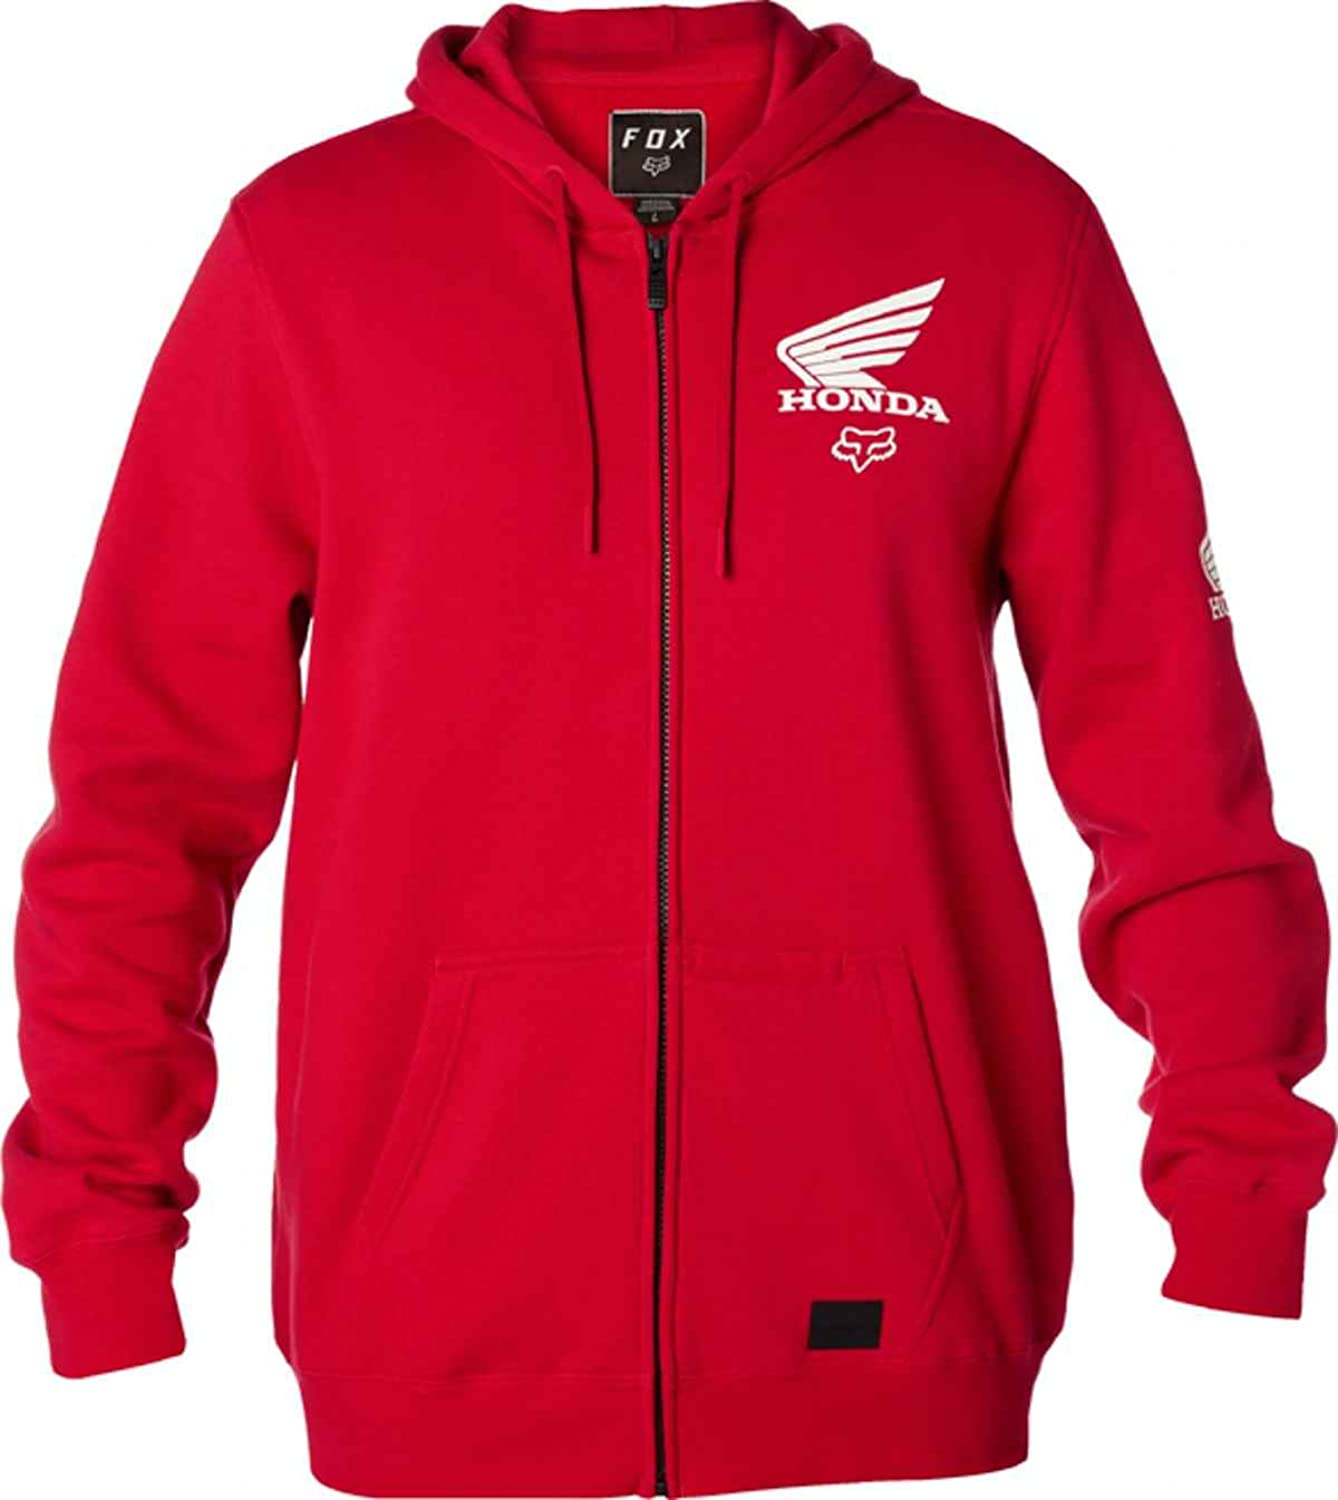 Cheap Fox Racing Men's Fox Honda Hoody Zip Sweatshirts for sale